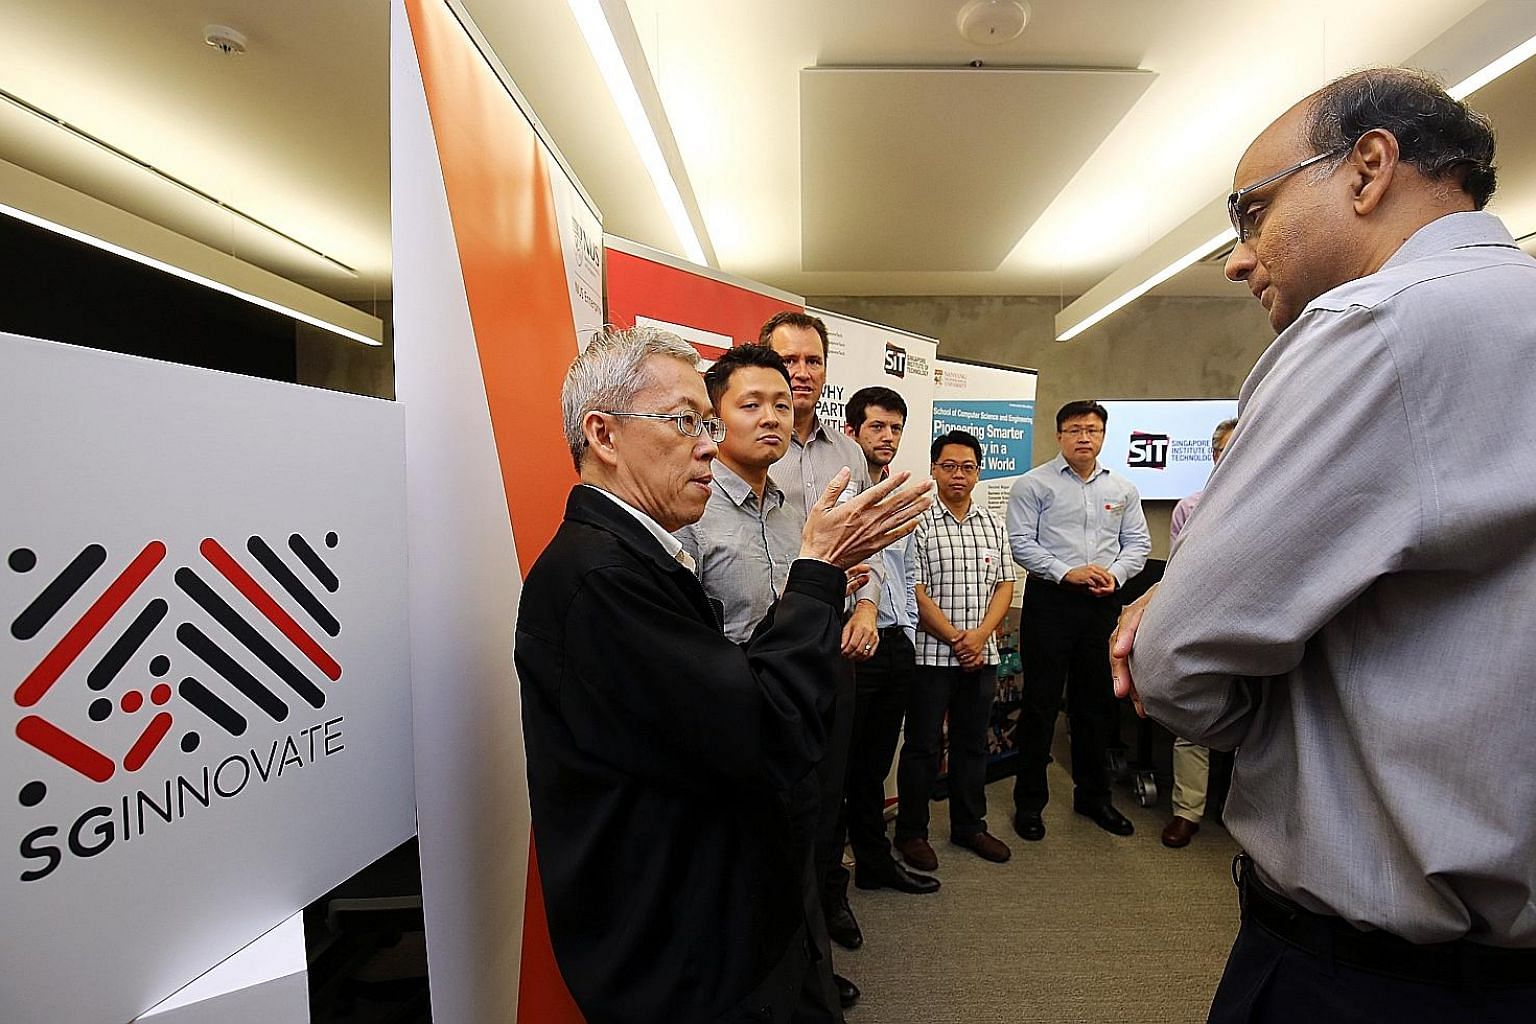 Deputy Prime Minister Tharman Shanmugaratnam with NUS Entrepreneurship Centre director Wong Poh Kam, who is also a professor at NUS Business School, and other SGInnovate partners at the launch of SGInnovate last year. SGInnovate will manage a part of